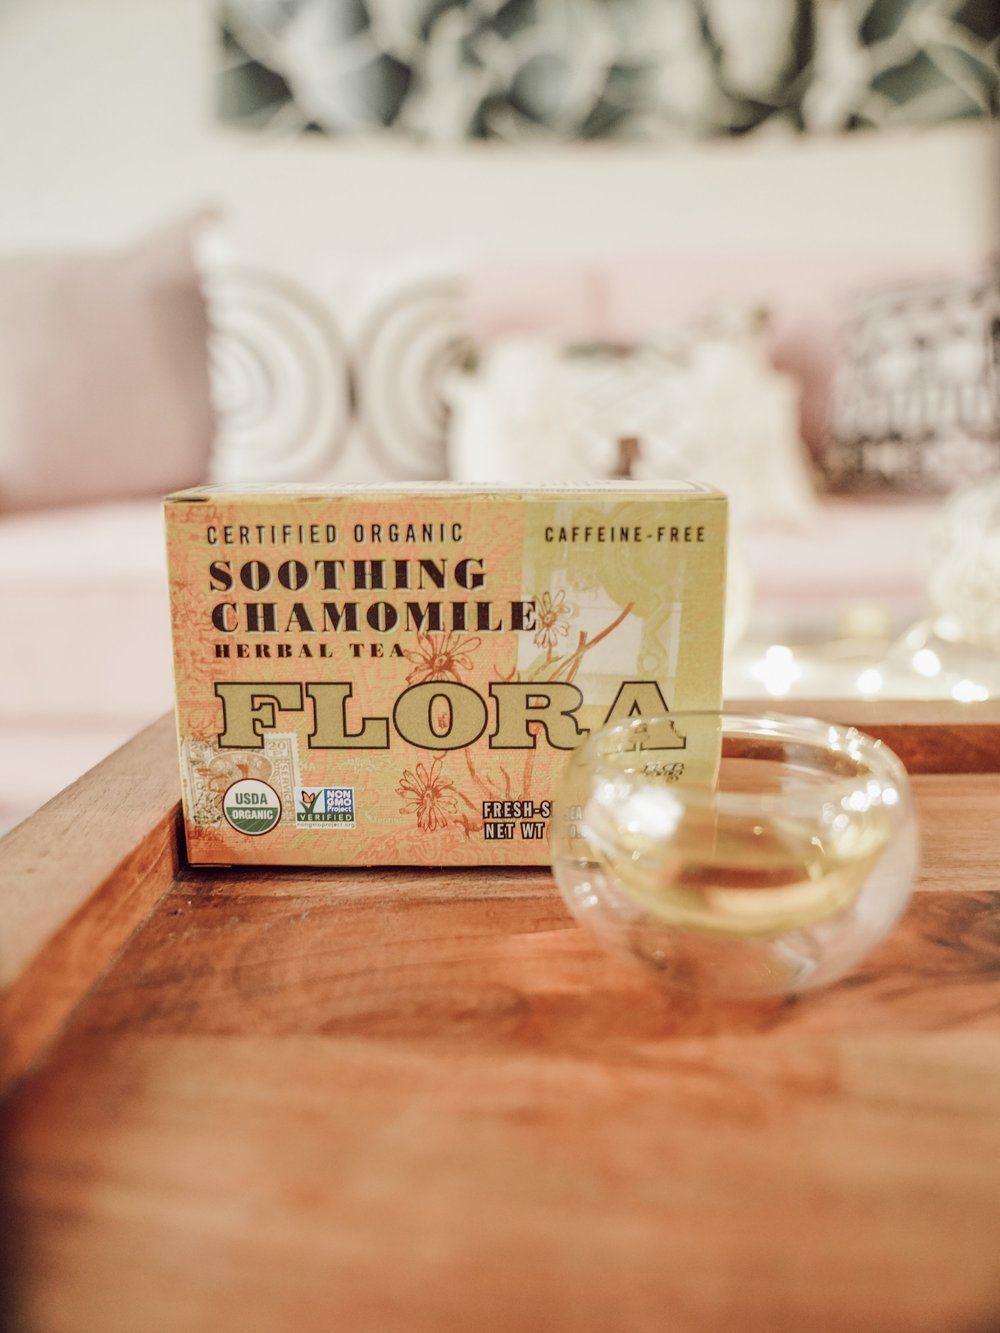 Soothing Chamomile Tea - Not gonna lie— I'm a little biased towards chamomile tea. The aroma, the comforting taste… AAH the whole shabang! I just love it so. My favorite go-to tea when I'm in distress. Flora Health's Soothing Chamomile Tea is among the best chamomile I've ever had.Overall rating: 5/5